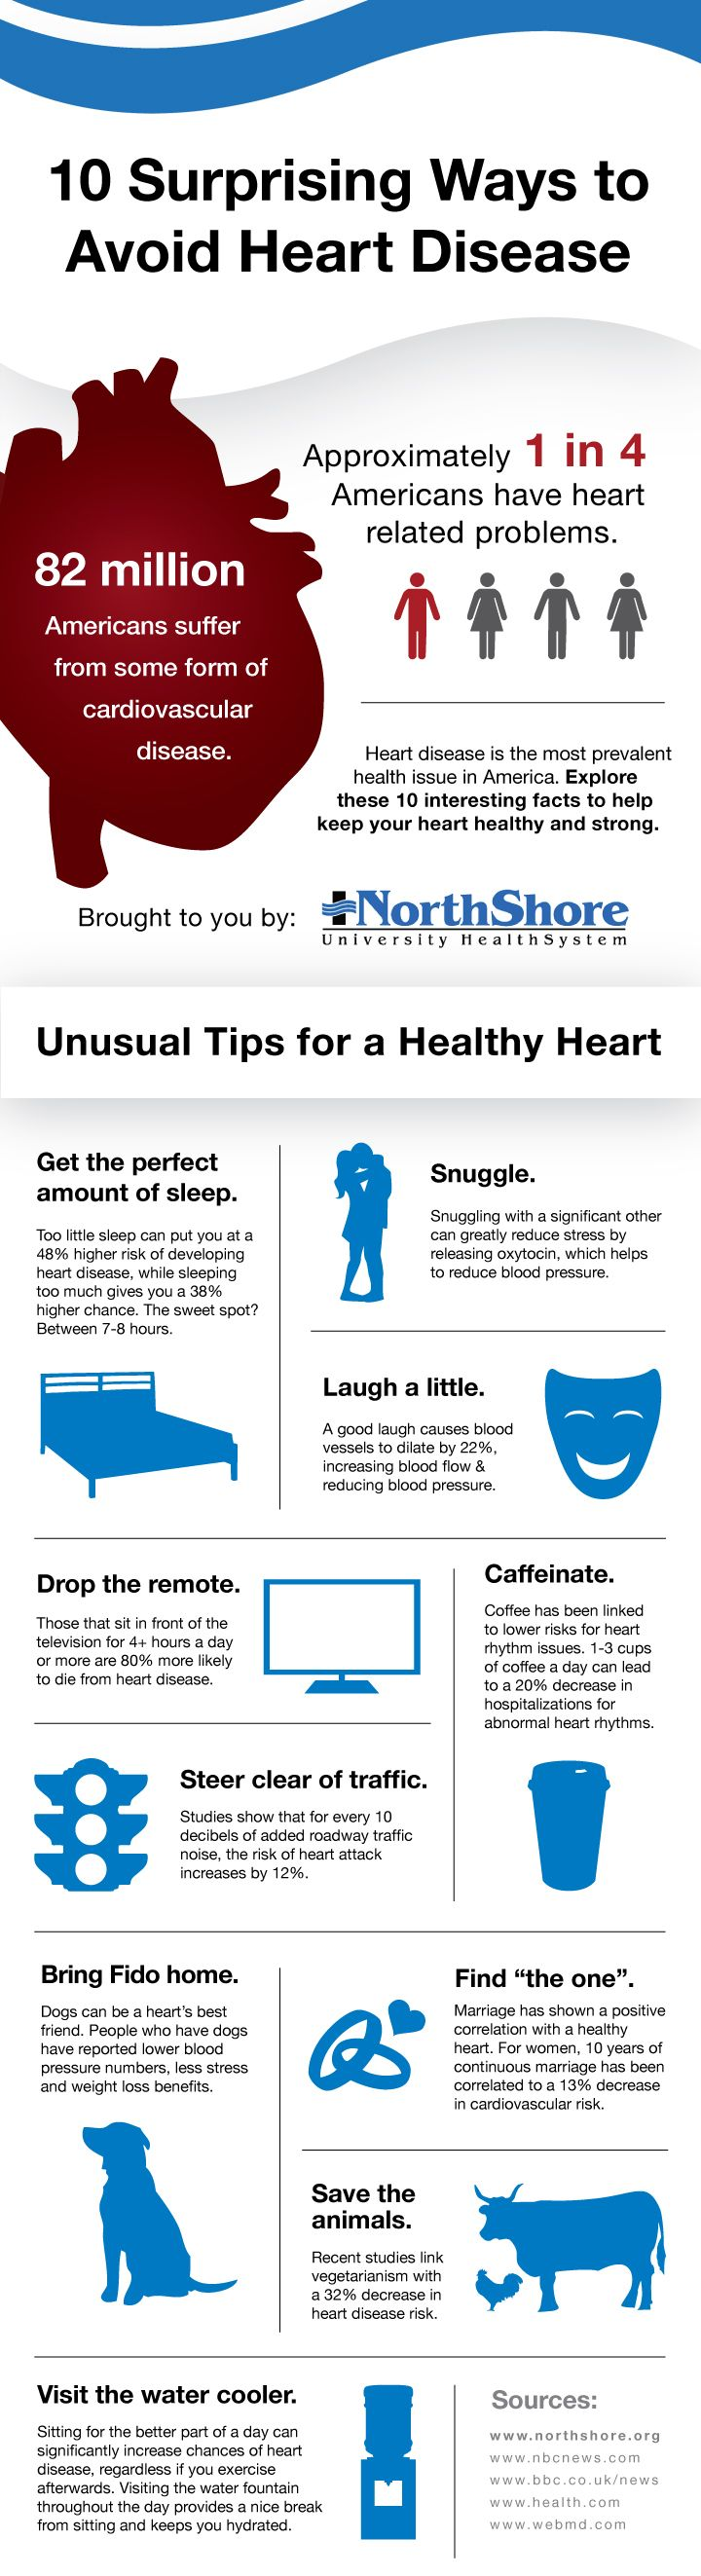 best images about heart disease heart health 17 best images about heart disease heart health blood pressure heart attack and heart disease